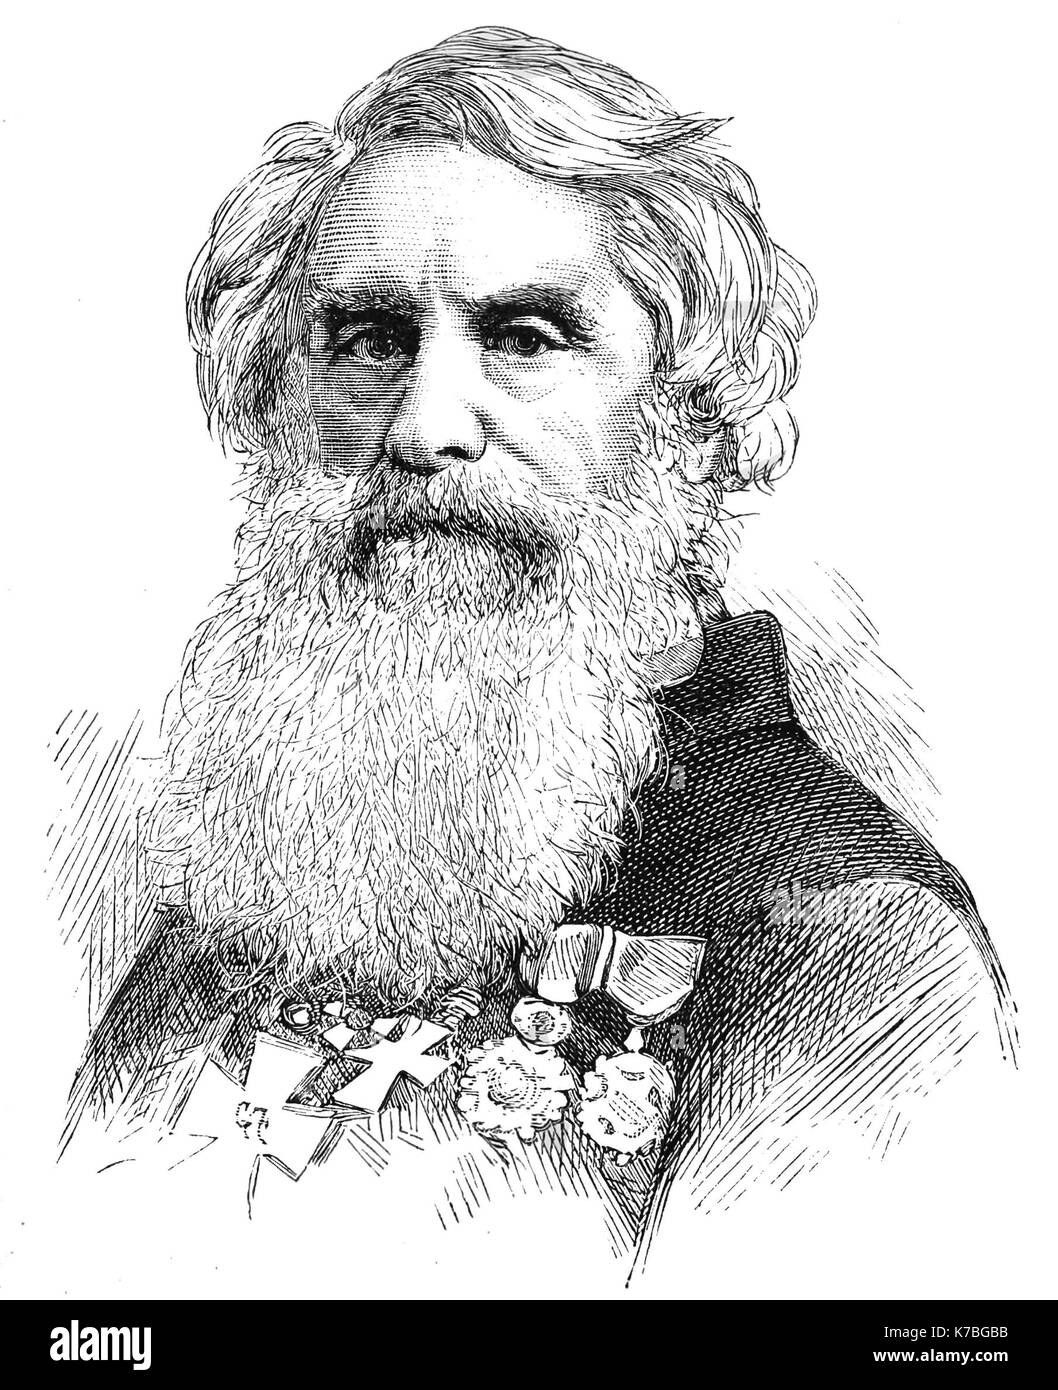 SAMUEL MORSE (1791-1872) American painter and inventor who jointly developed the Morse code and the telegraph system - Stock Image